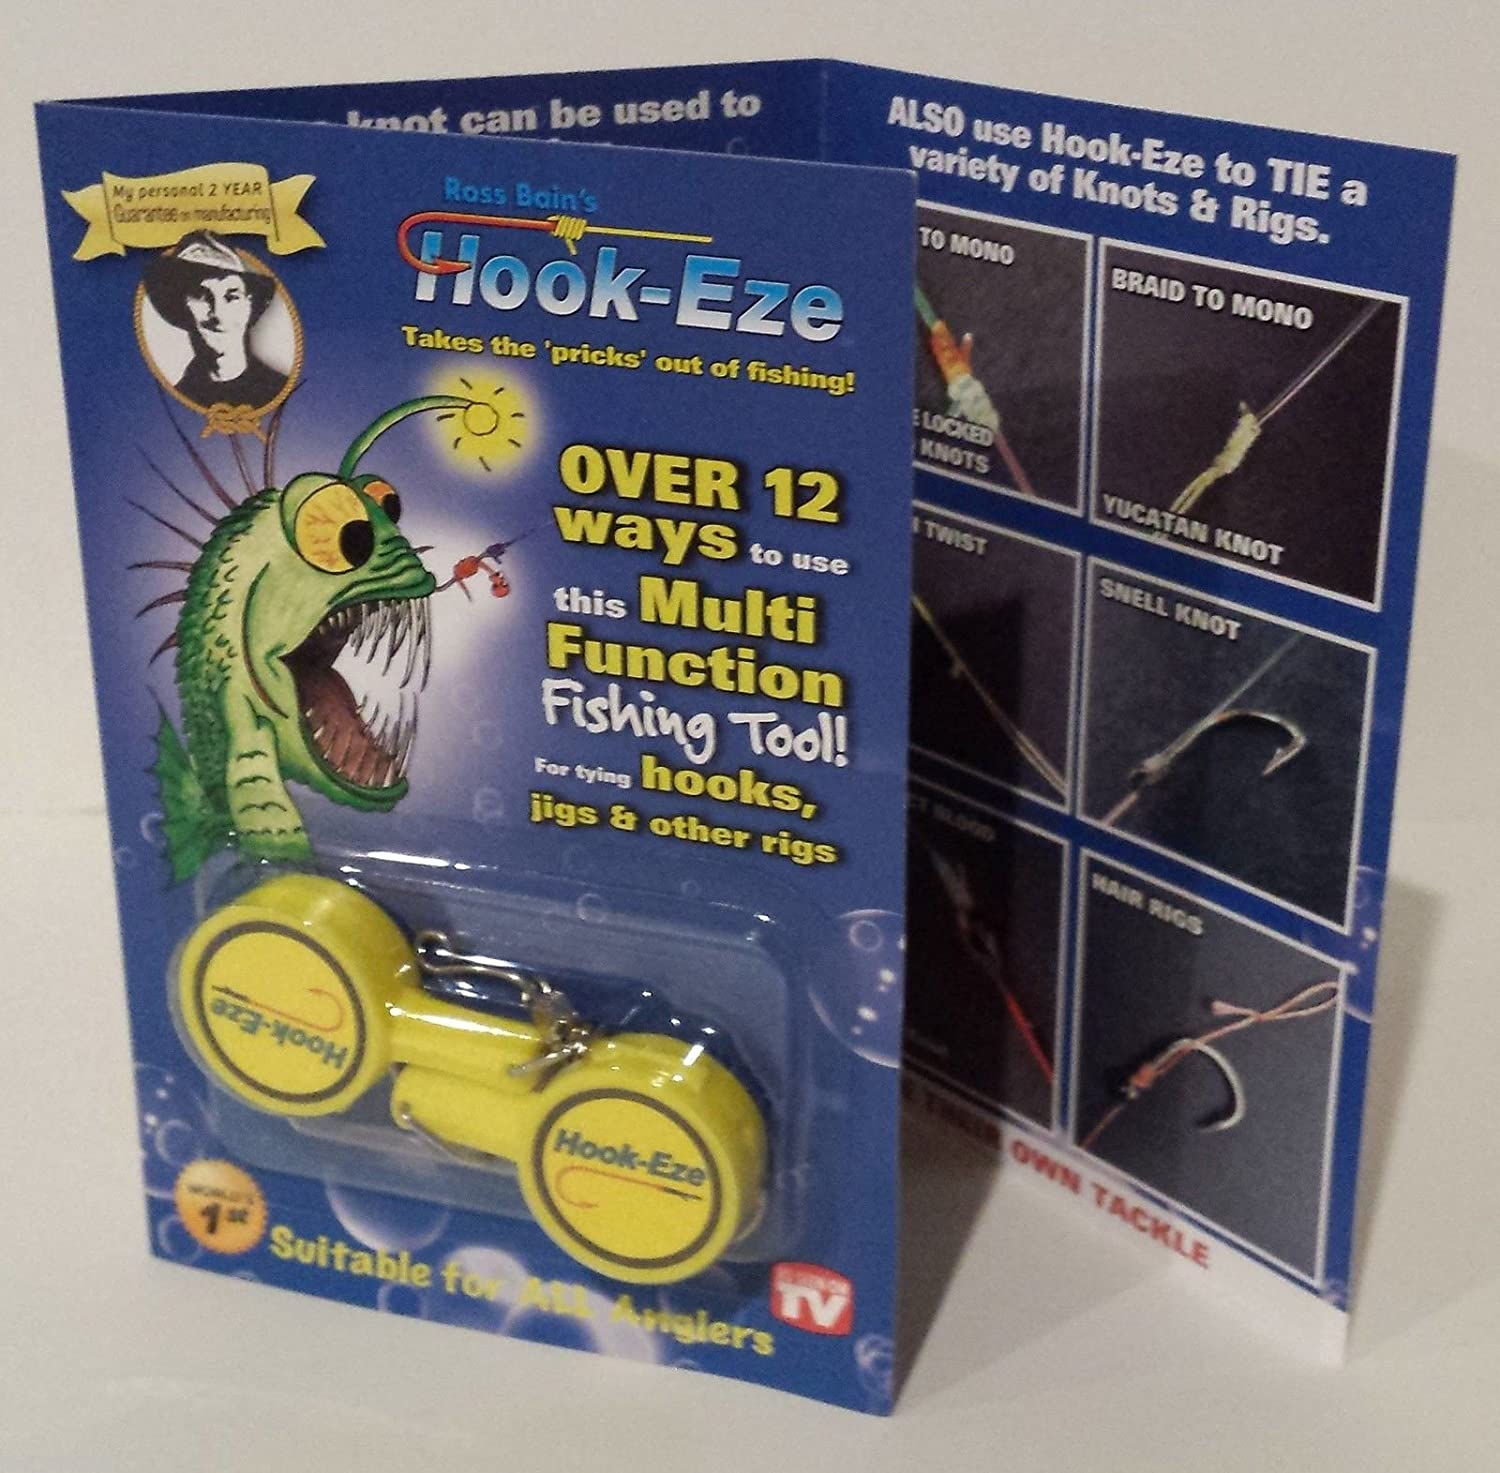 1 HOOK-EZE Twin Pack - CHOOSE YOUR COLOR - Fishing Safety Tying Device + Line cutter and more